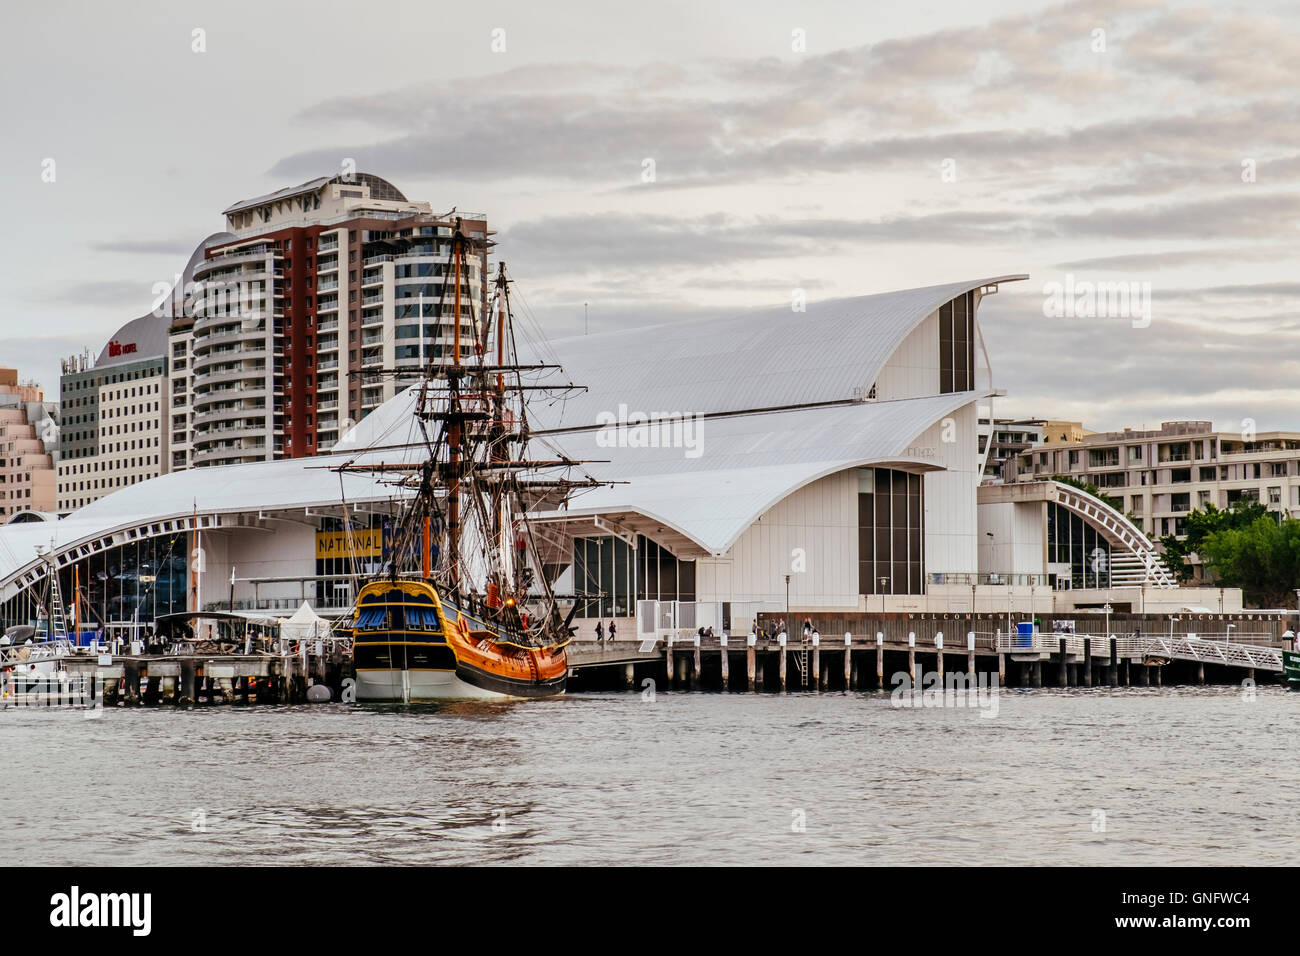 National Maritime Museum, Darling Harbour, Sydney, New South Wales, Australia - Stock Image